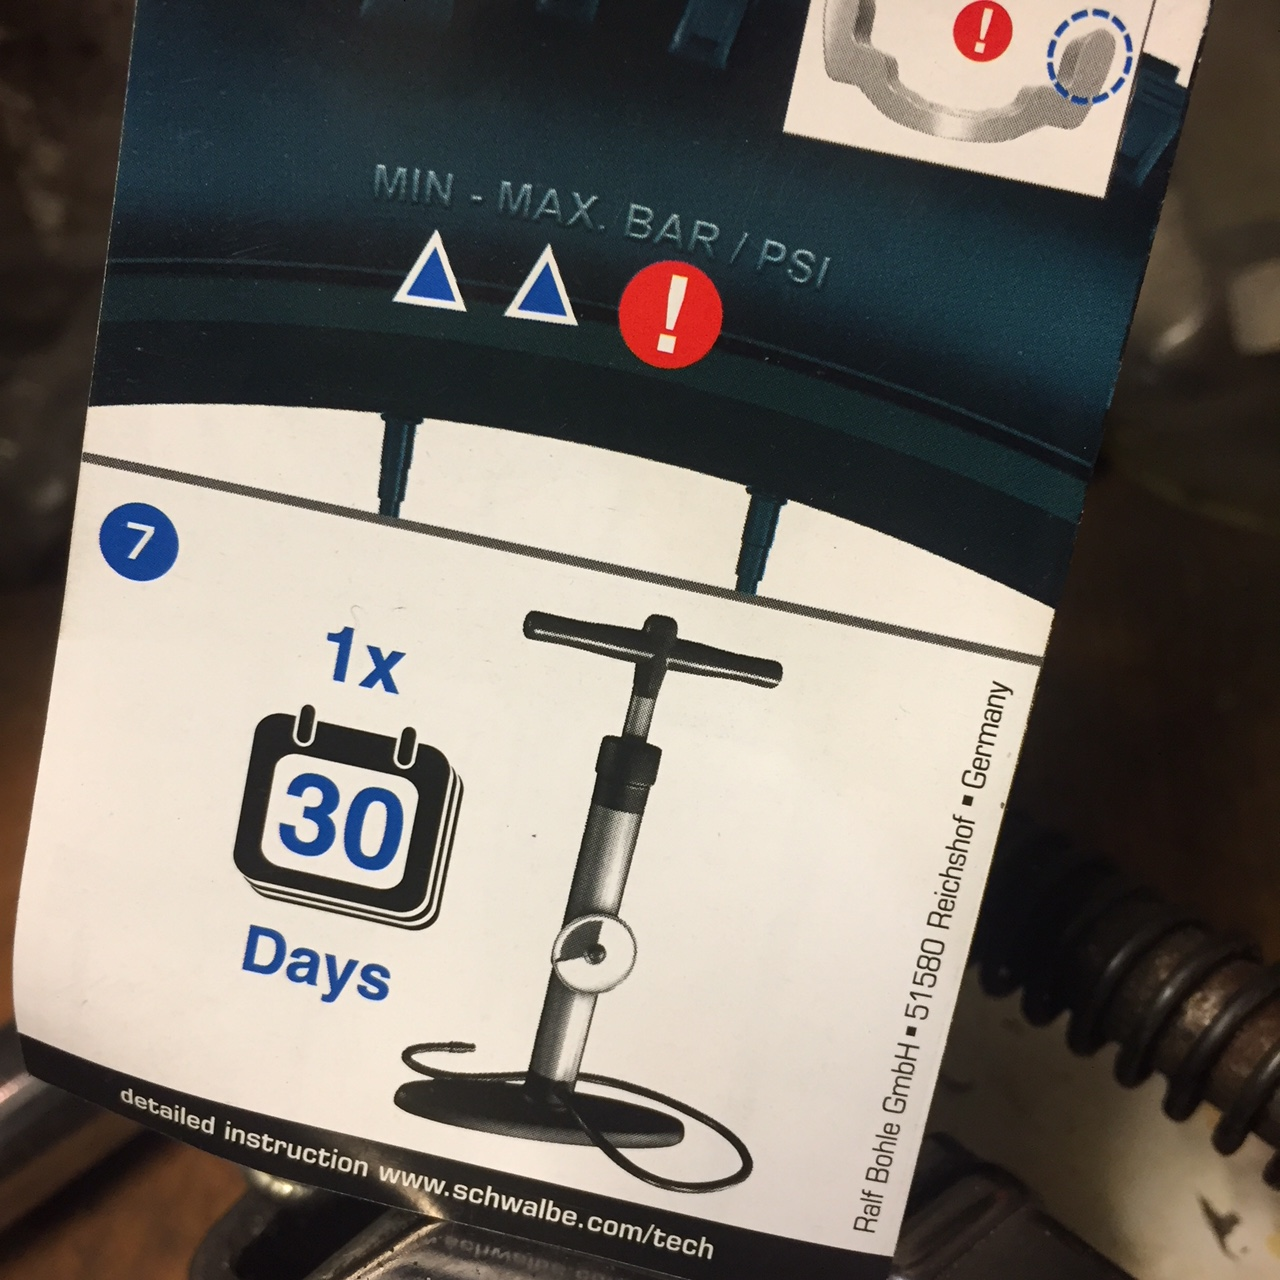 Schwalbe recommends pumping your tyres every 30 days